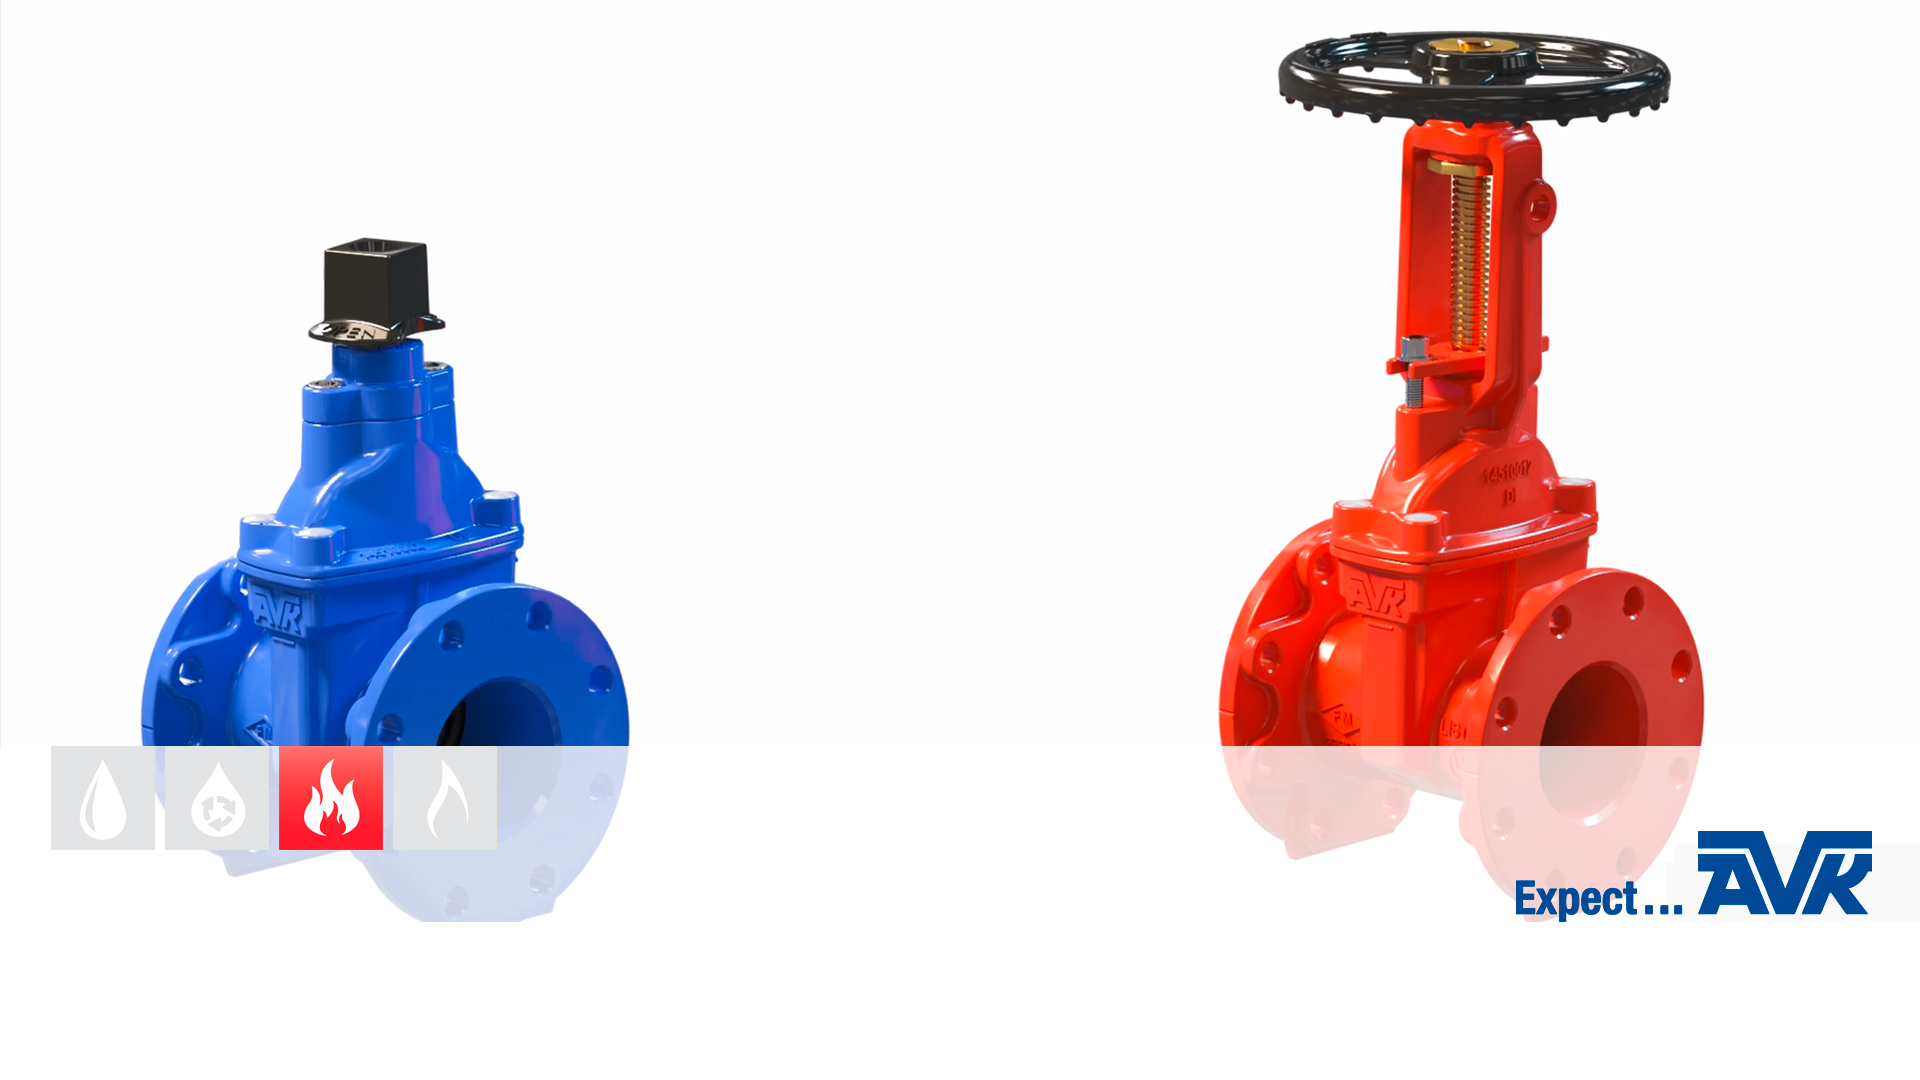 Features and benefits of AVK gate valves for fire protection applications